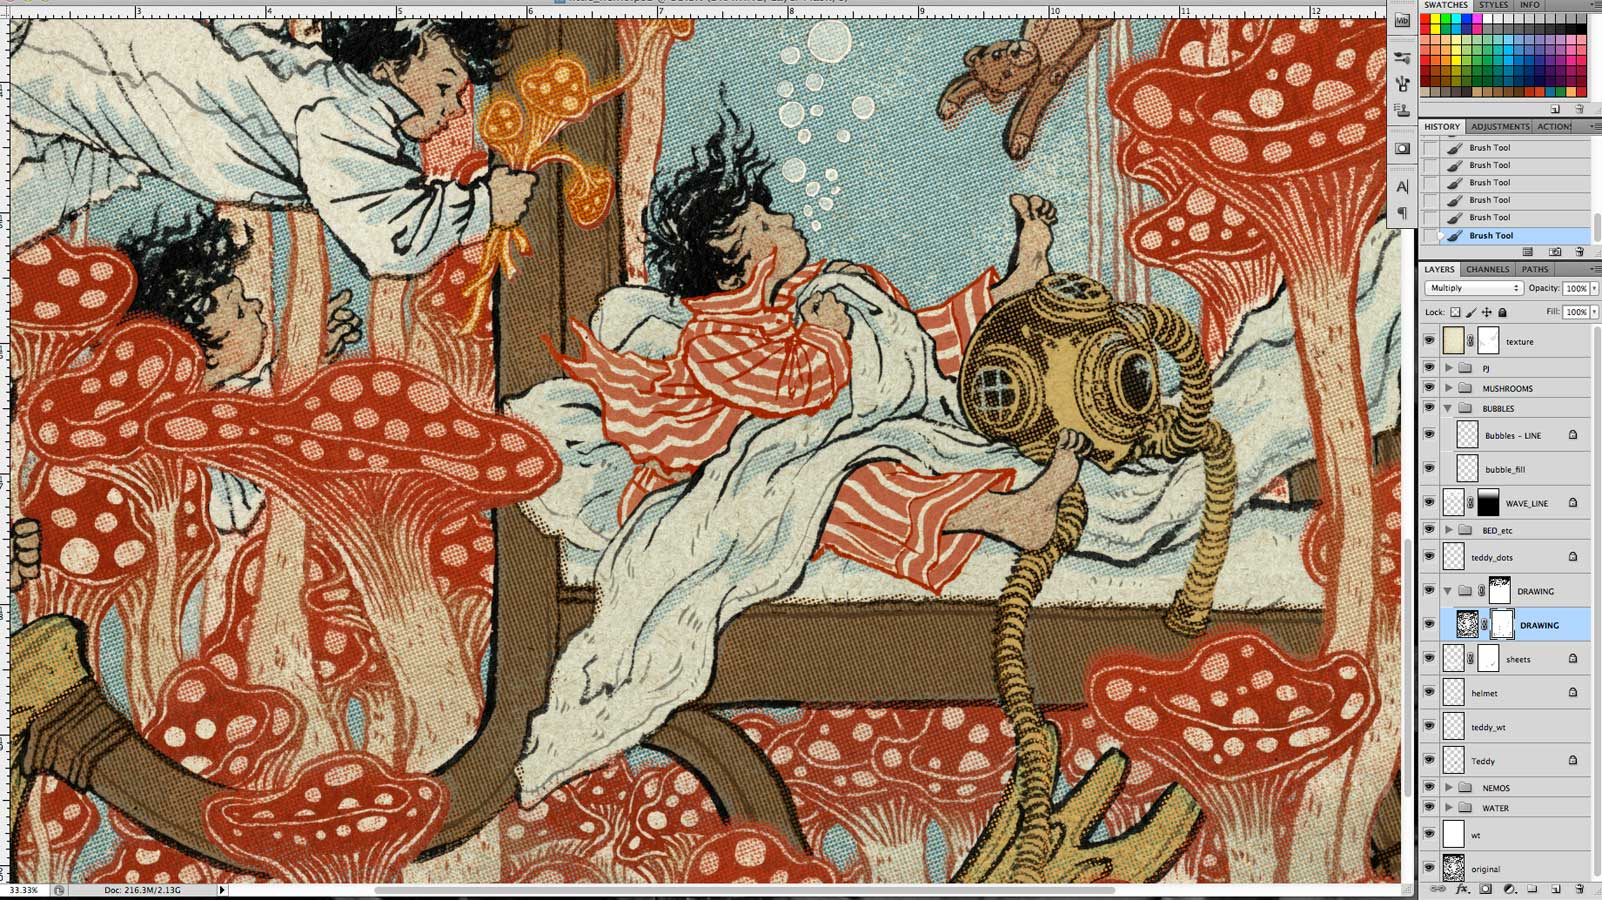 Yuko Shimizu - Little Nemo Dream Another Dream -